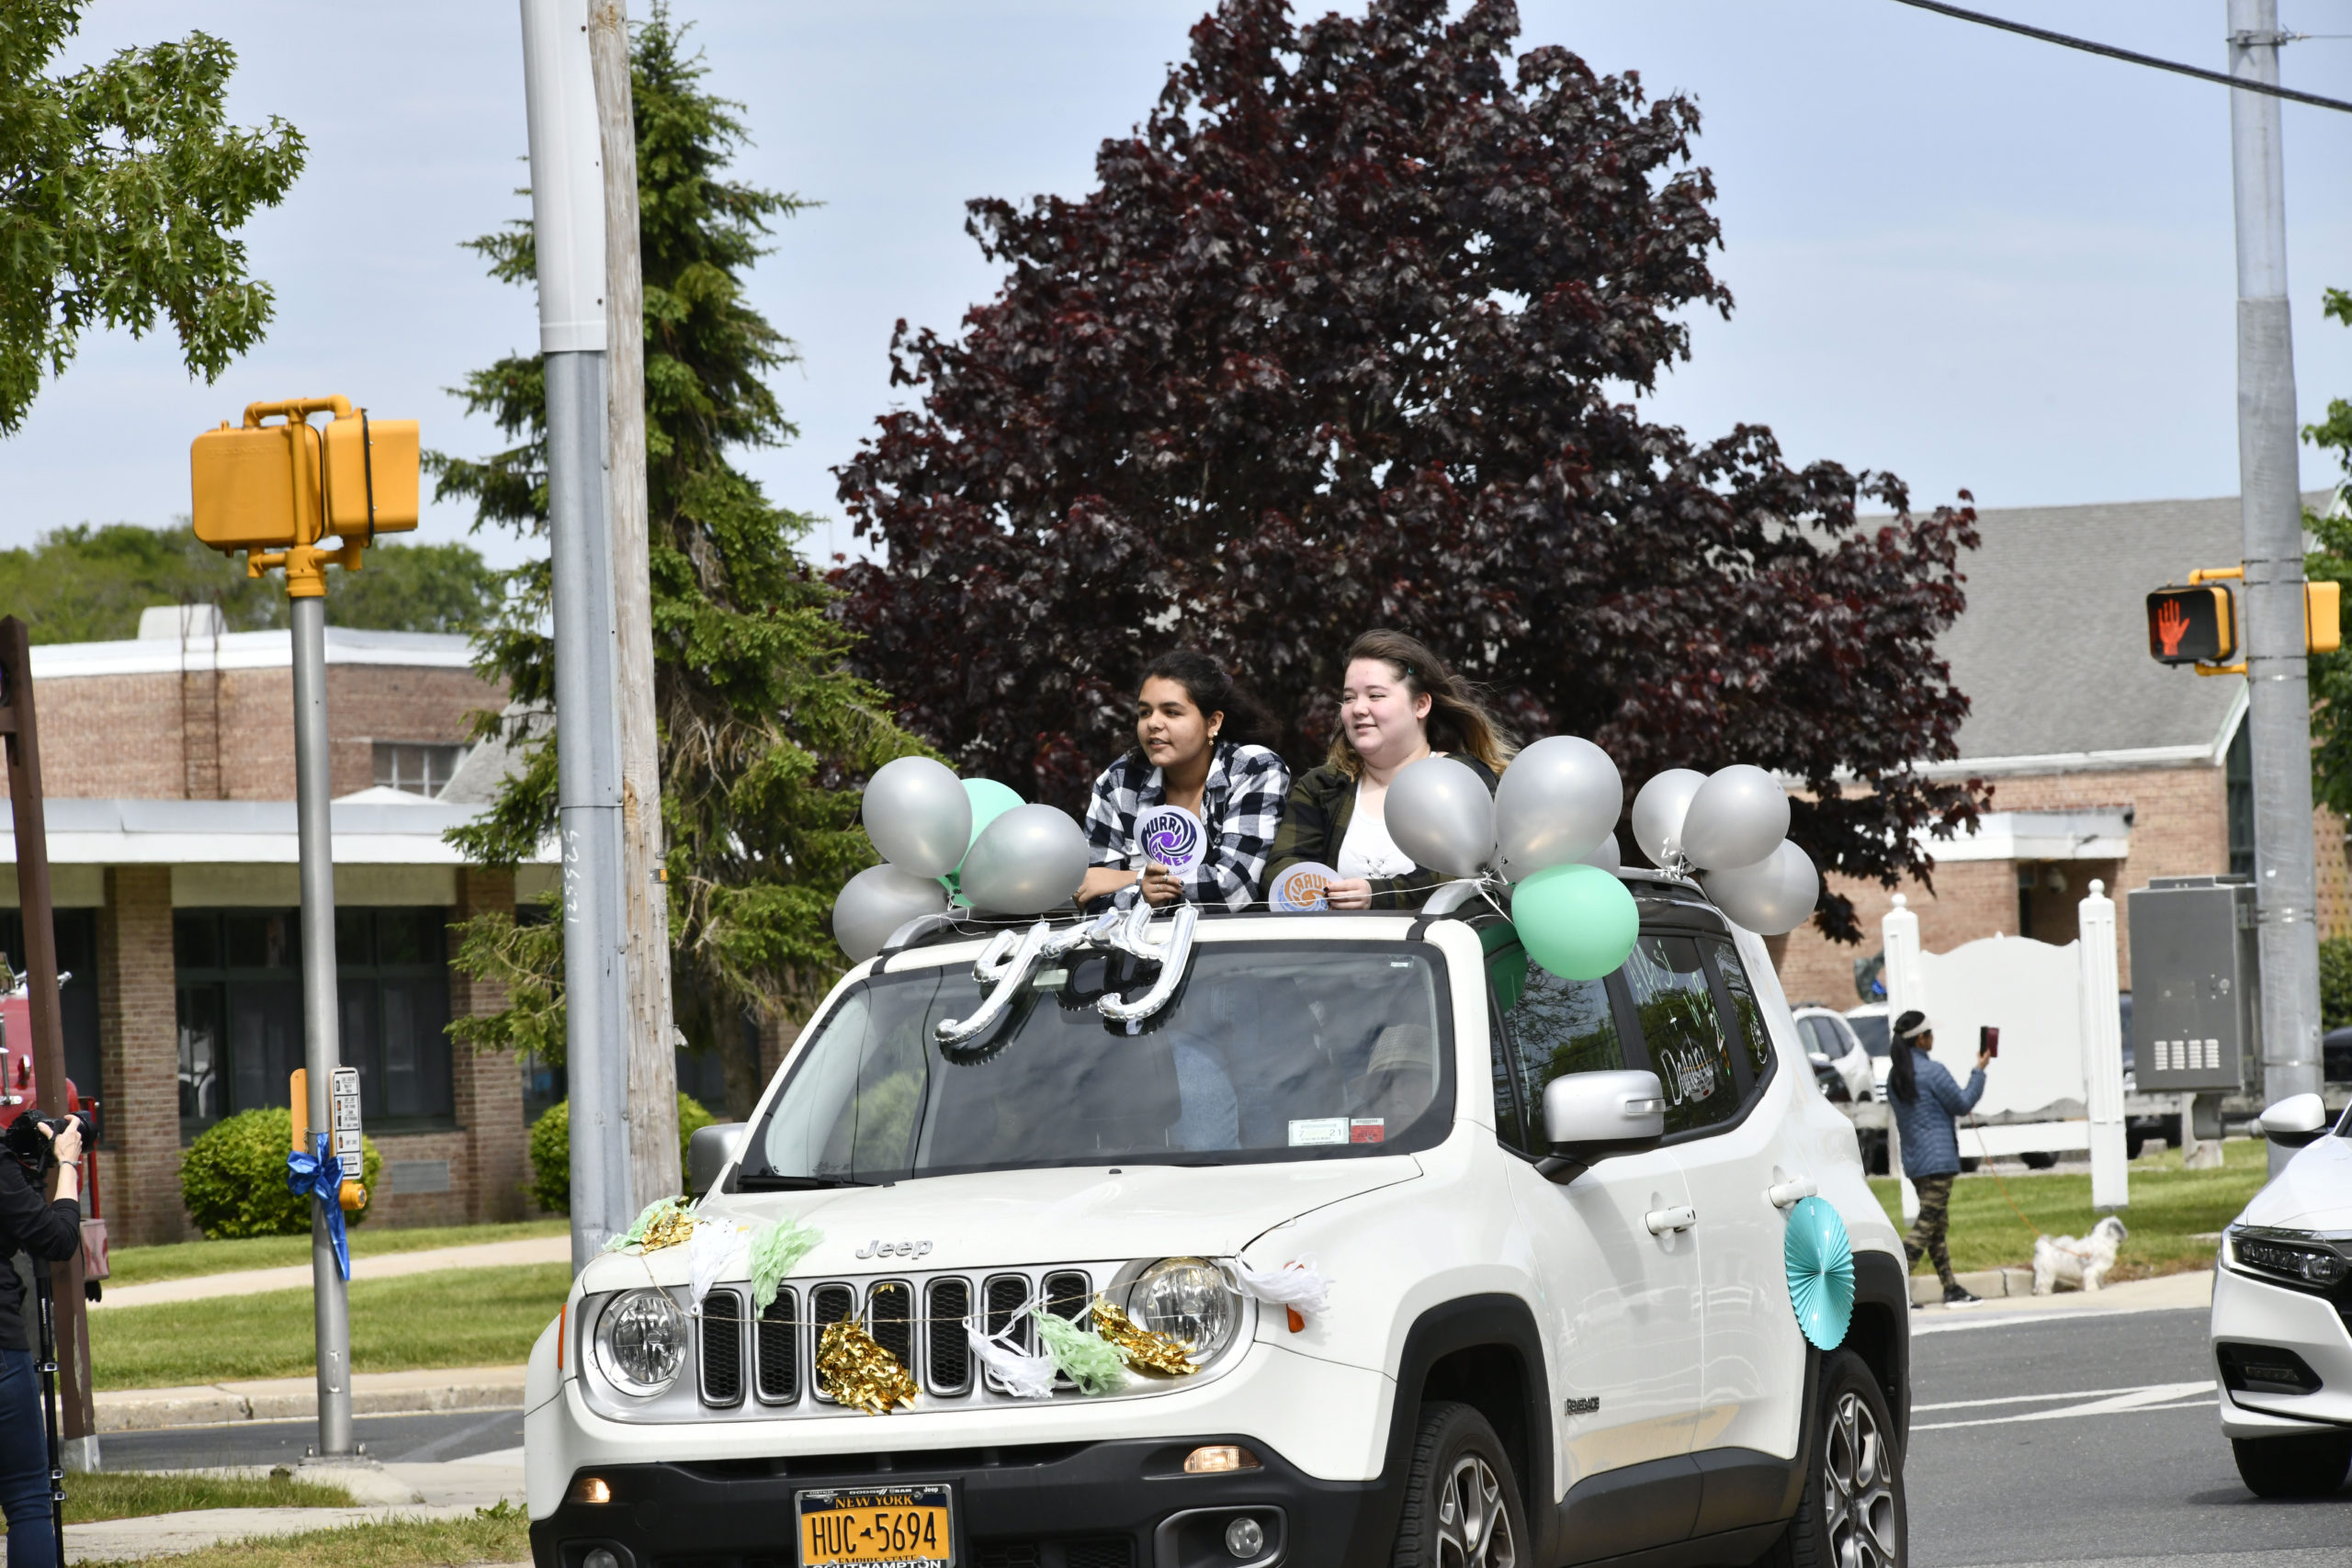 Westhampton Beach High School hosted the senior parade celebrating the Class of 2020 on Tuesday morning.